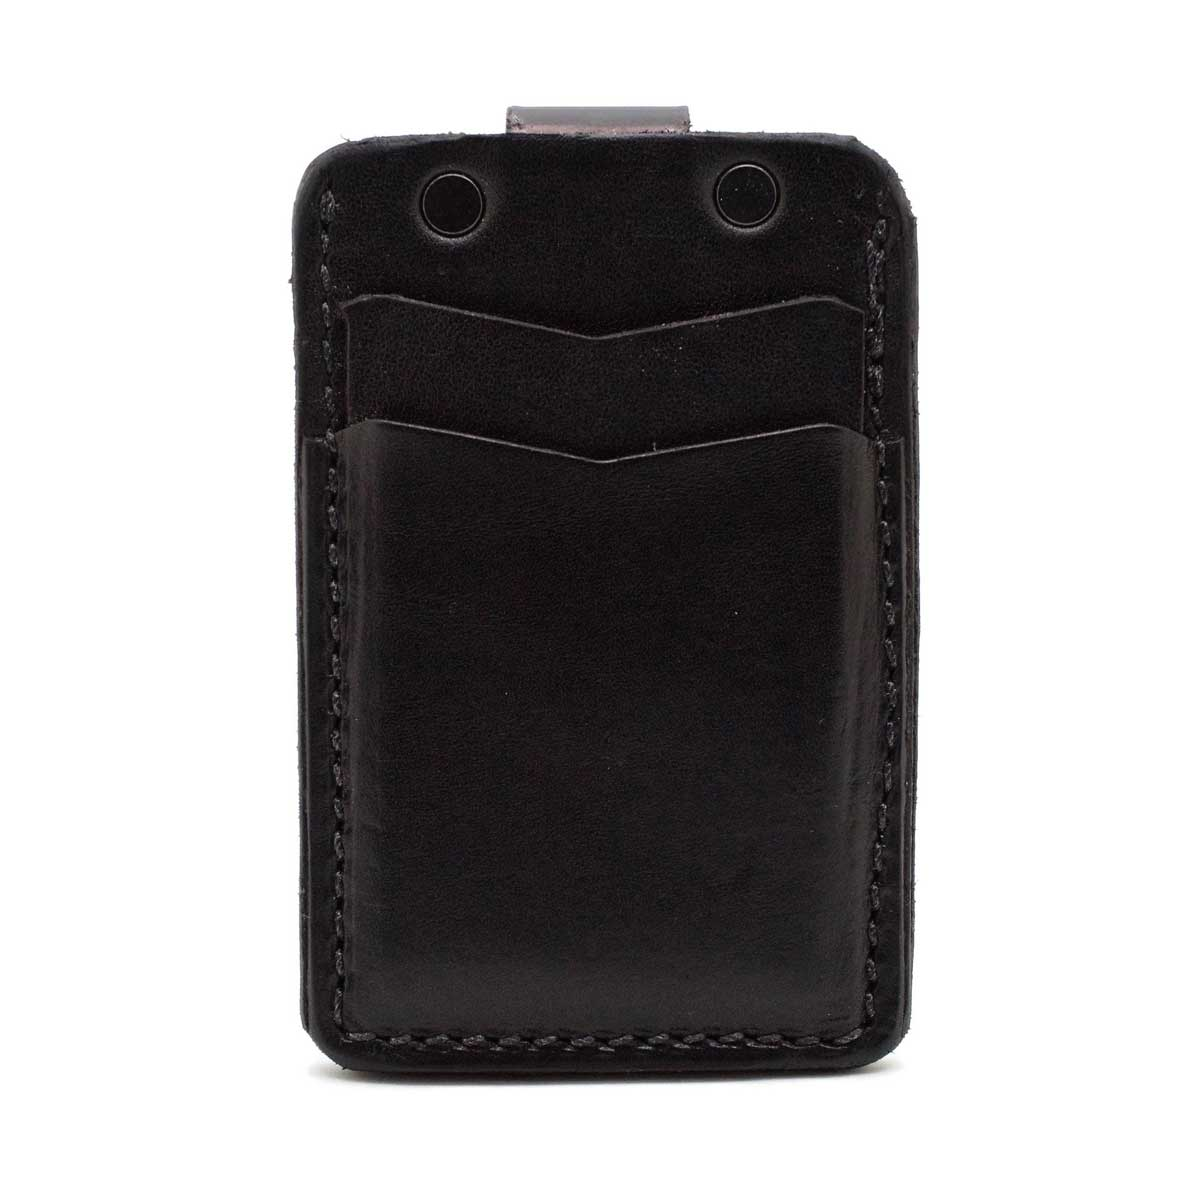 Front side of black minimalist wallet showing 2 pockets empty